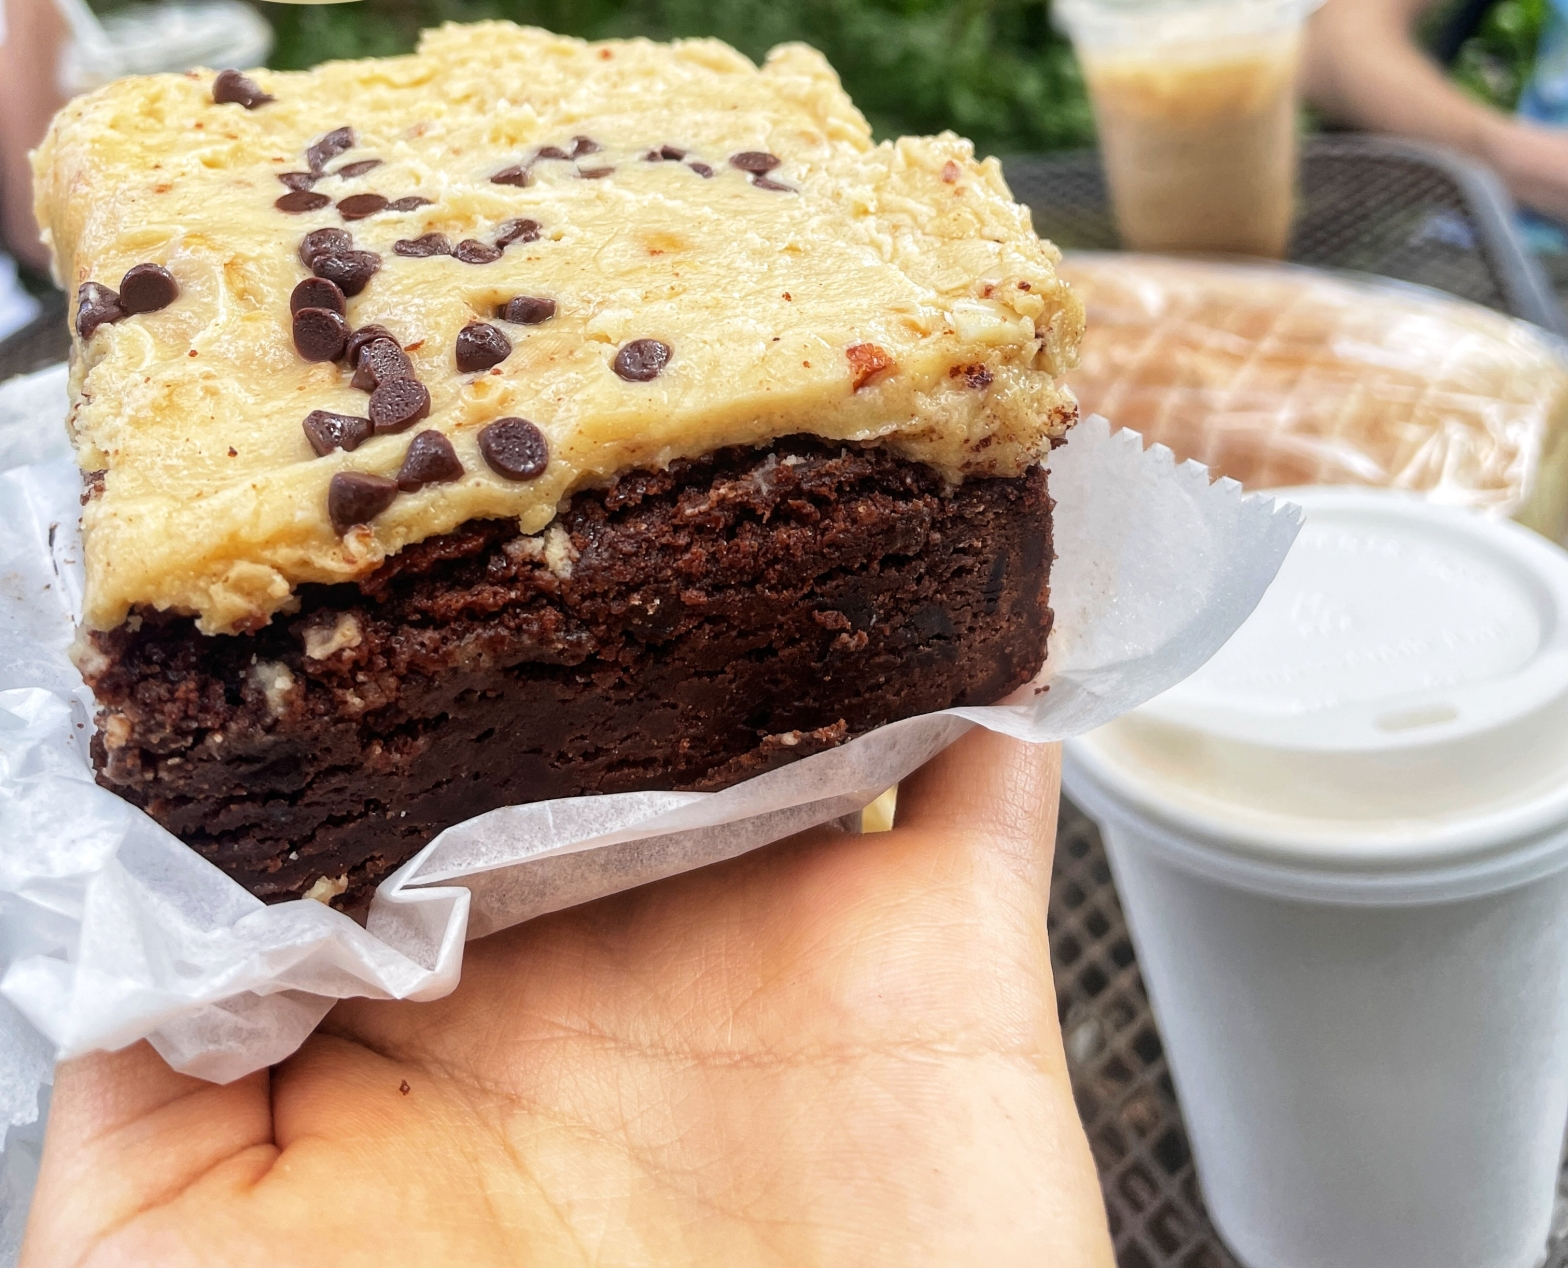 Peanut butter Brownie and Coffee